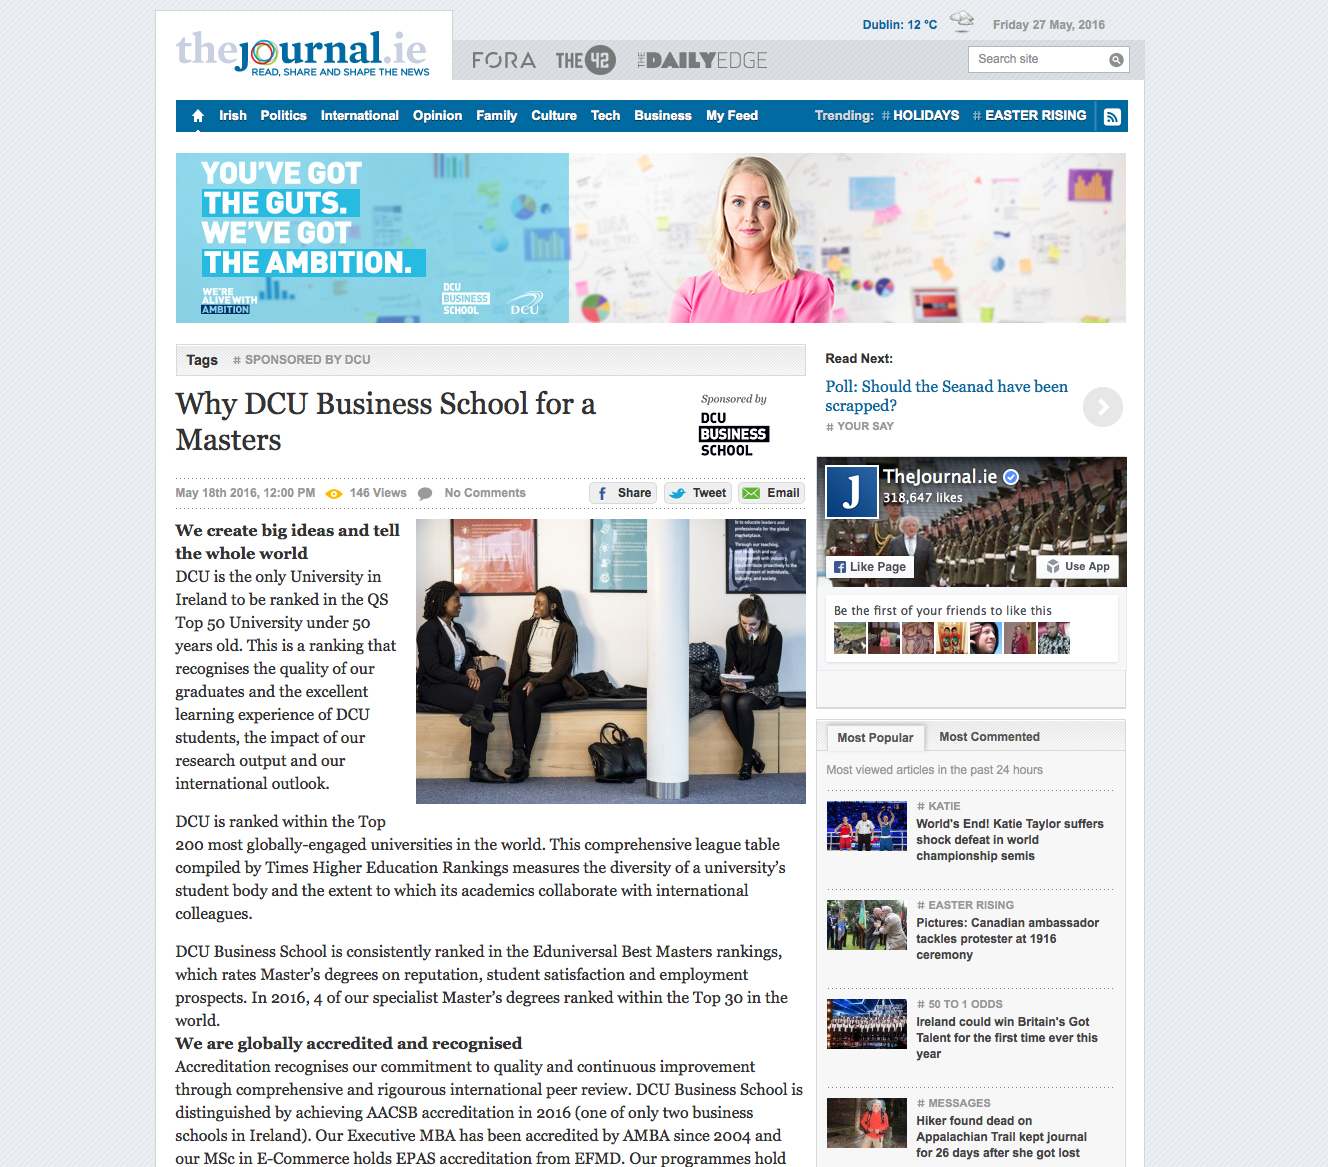 Visual Banner created for native article content on the journal.ie